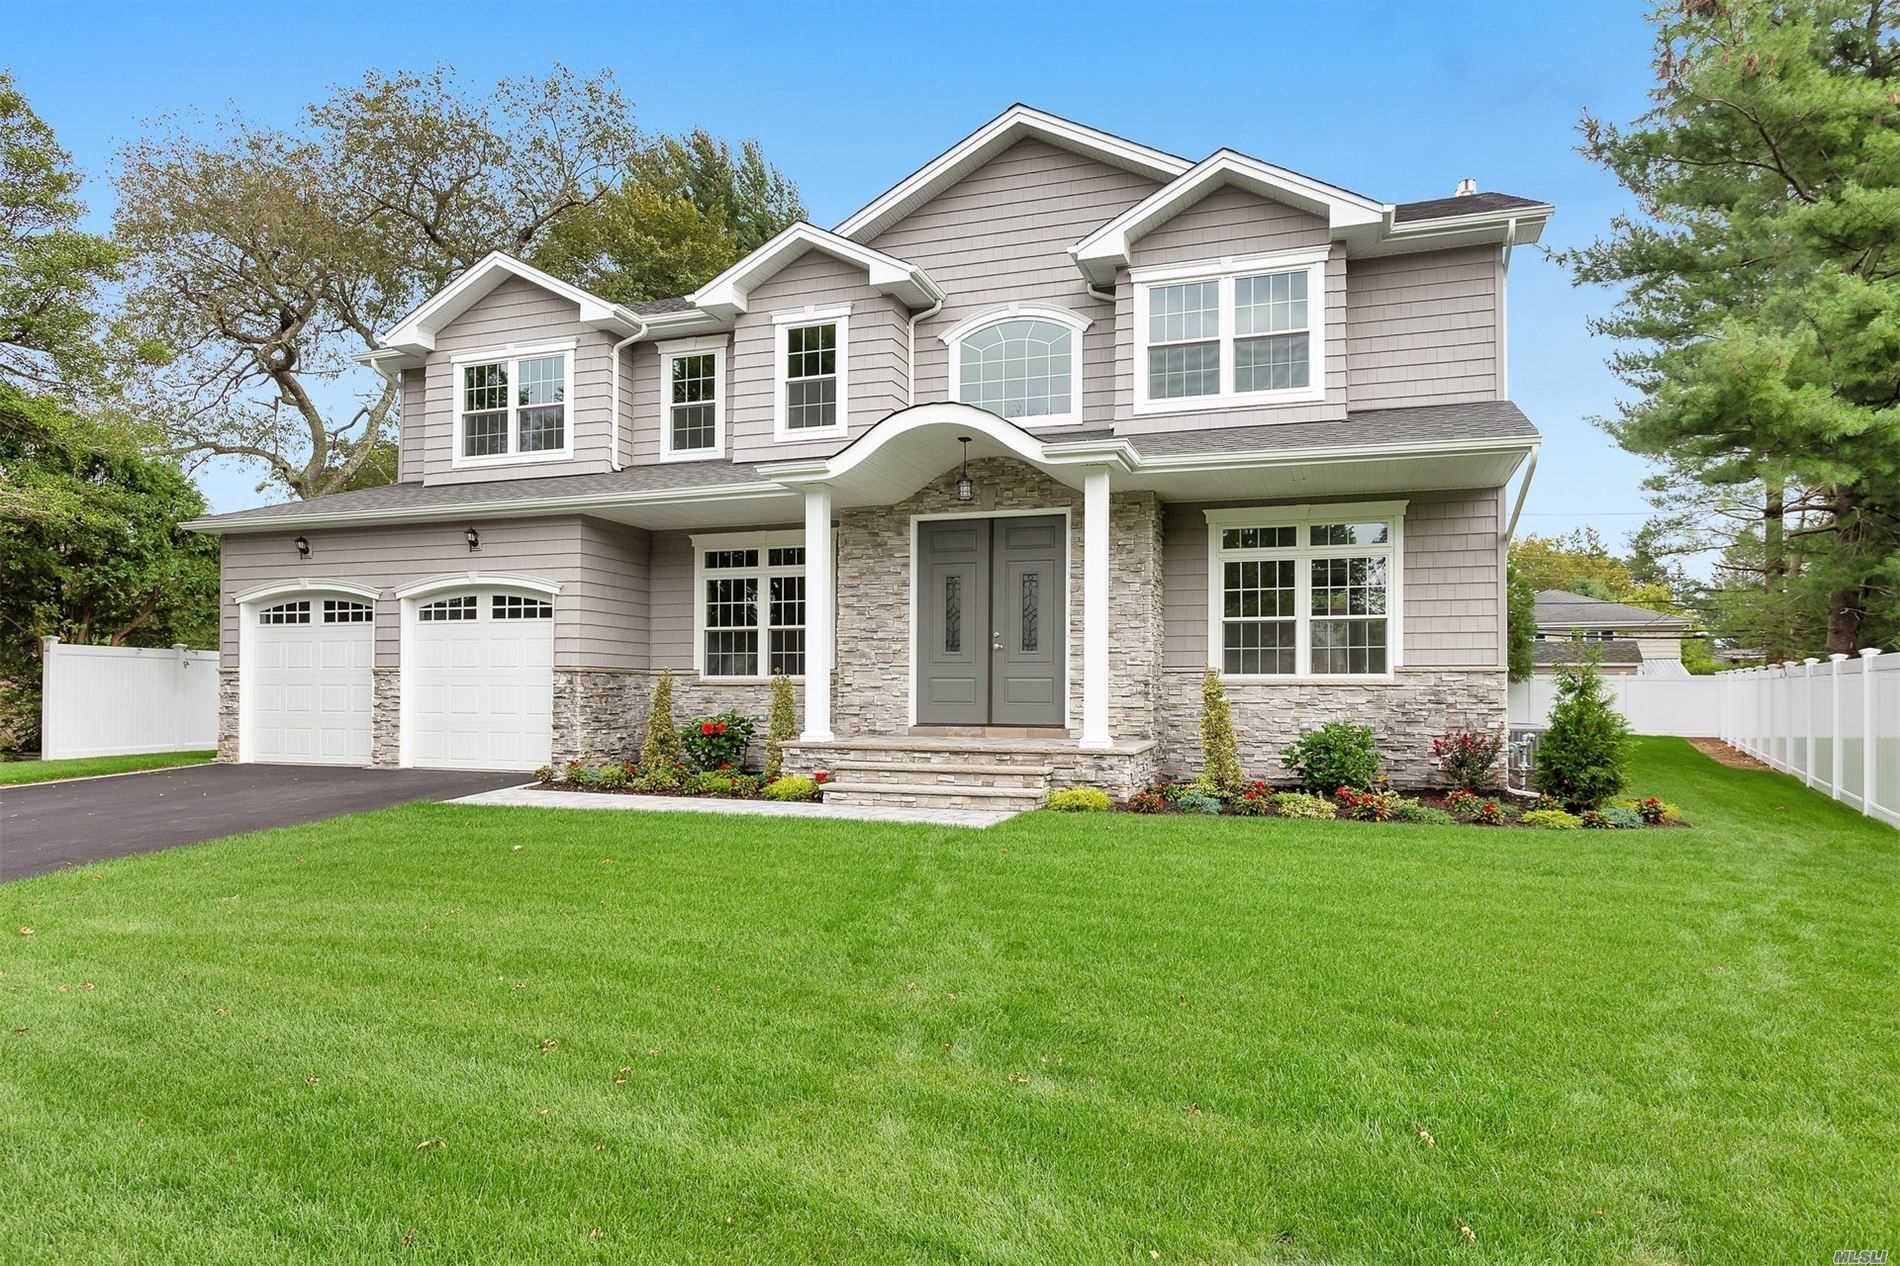 50% completion! Prime North Syosset ! 3800 Sq Ft. Home Featuring Grand 2 Story Entrance, Hardwood Floors Throughout,  5 Bedrooms, 4.5 Bathrooms, , Sun-Filled Master Br W/Tray Ceiling- His + Hers Wic, Designer Kitchen W Center Island And Ss Appliances, Walk In Pantry, 1 Bedroom On Main Level W/ Full Bath- Den W/ Gas Fire Place - Full Basement W/ Ose. Fenced Back Yard . Other model available for show